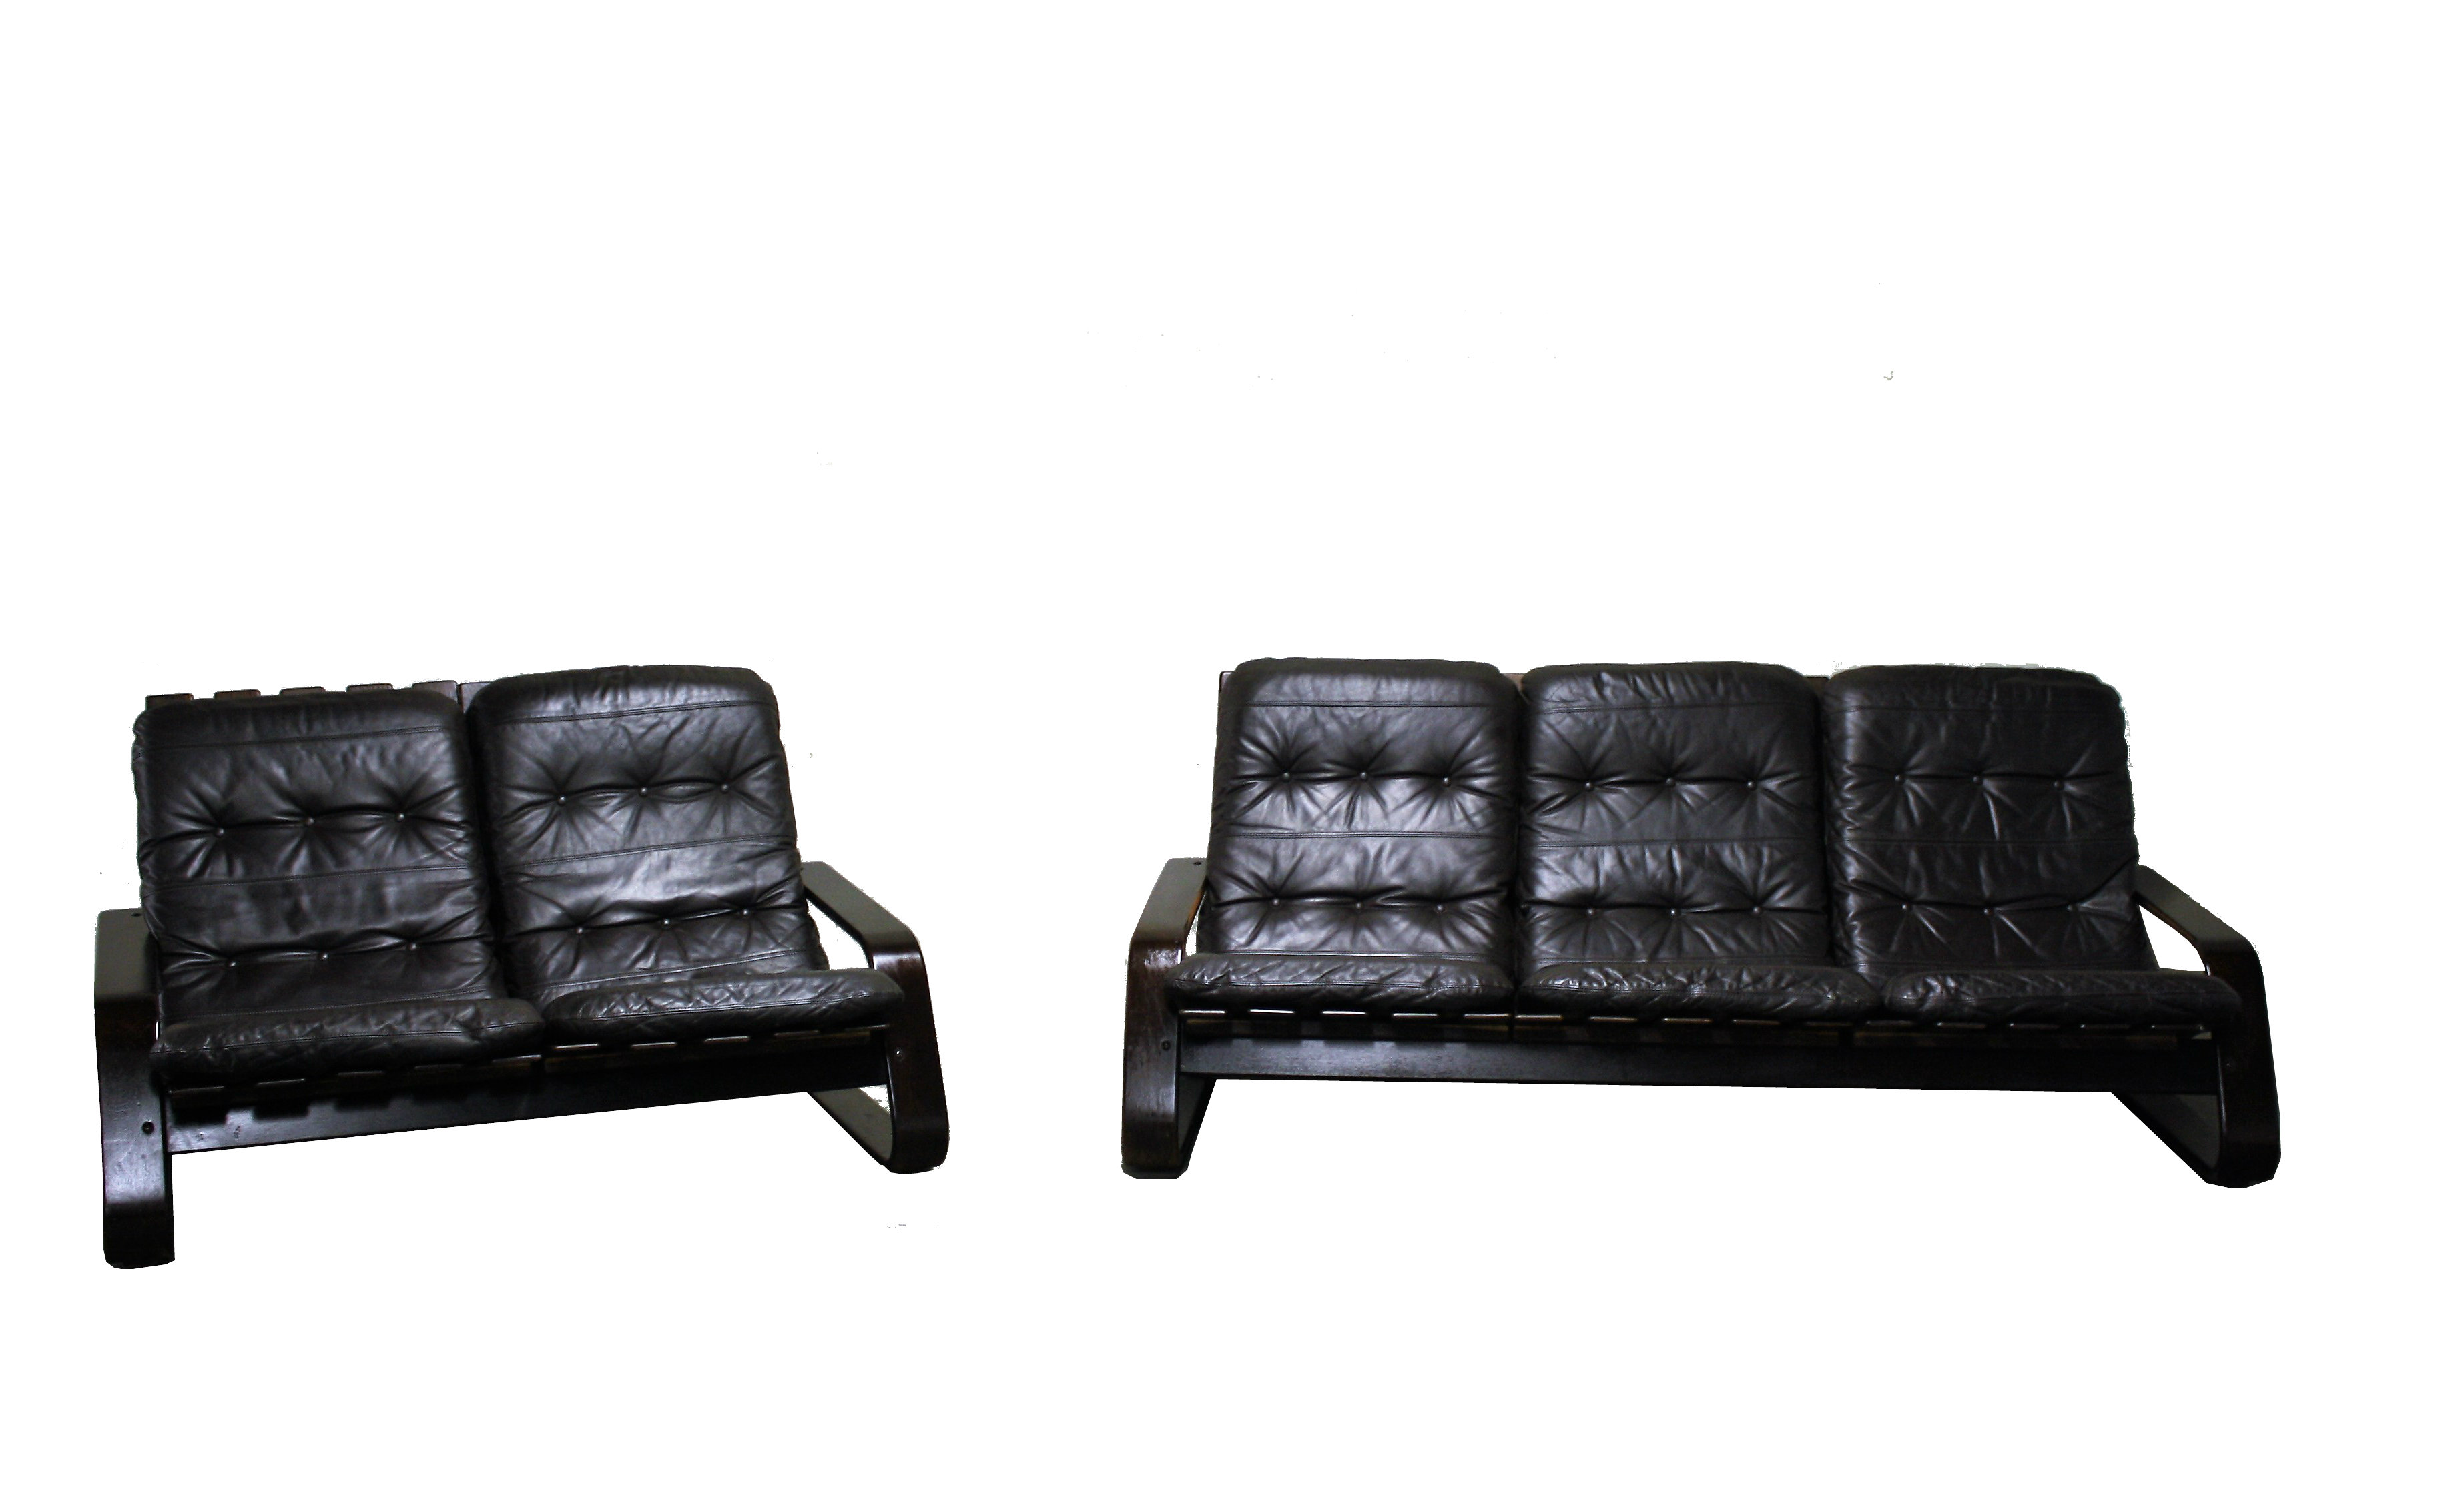 Scandinavian bent wood leather sofa set in the style of westnofa 1960s